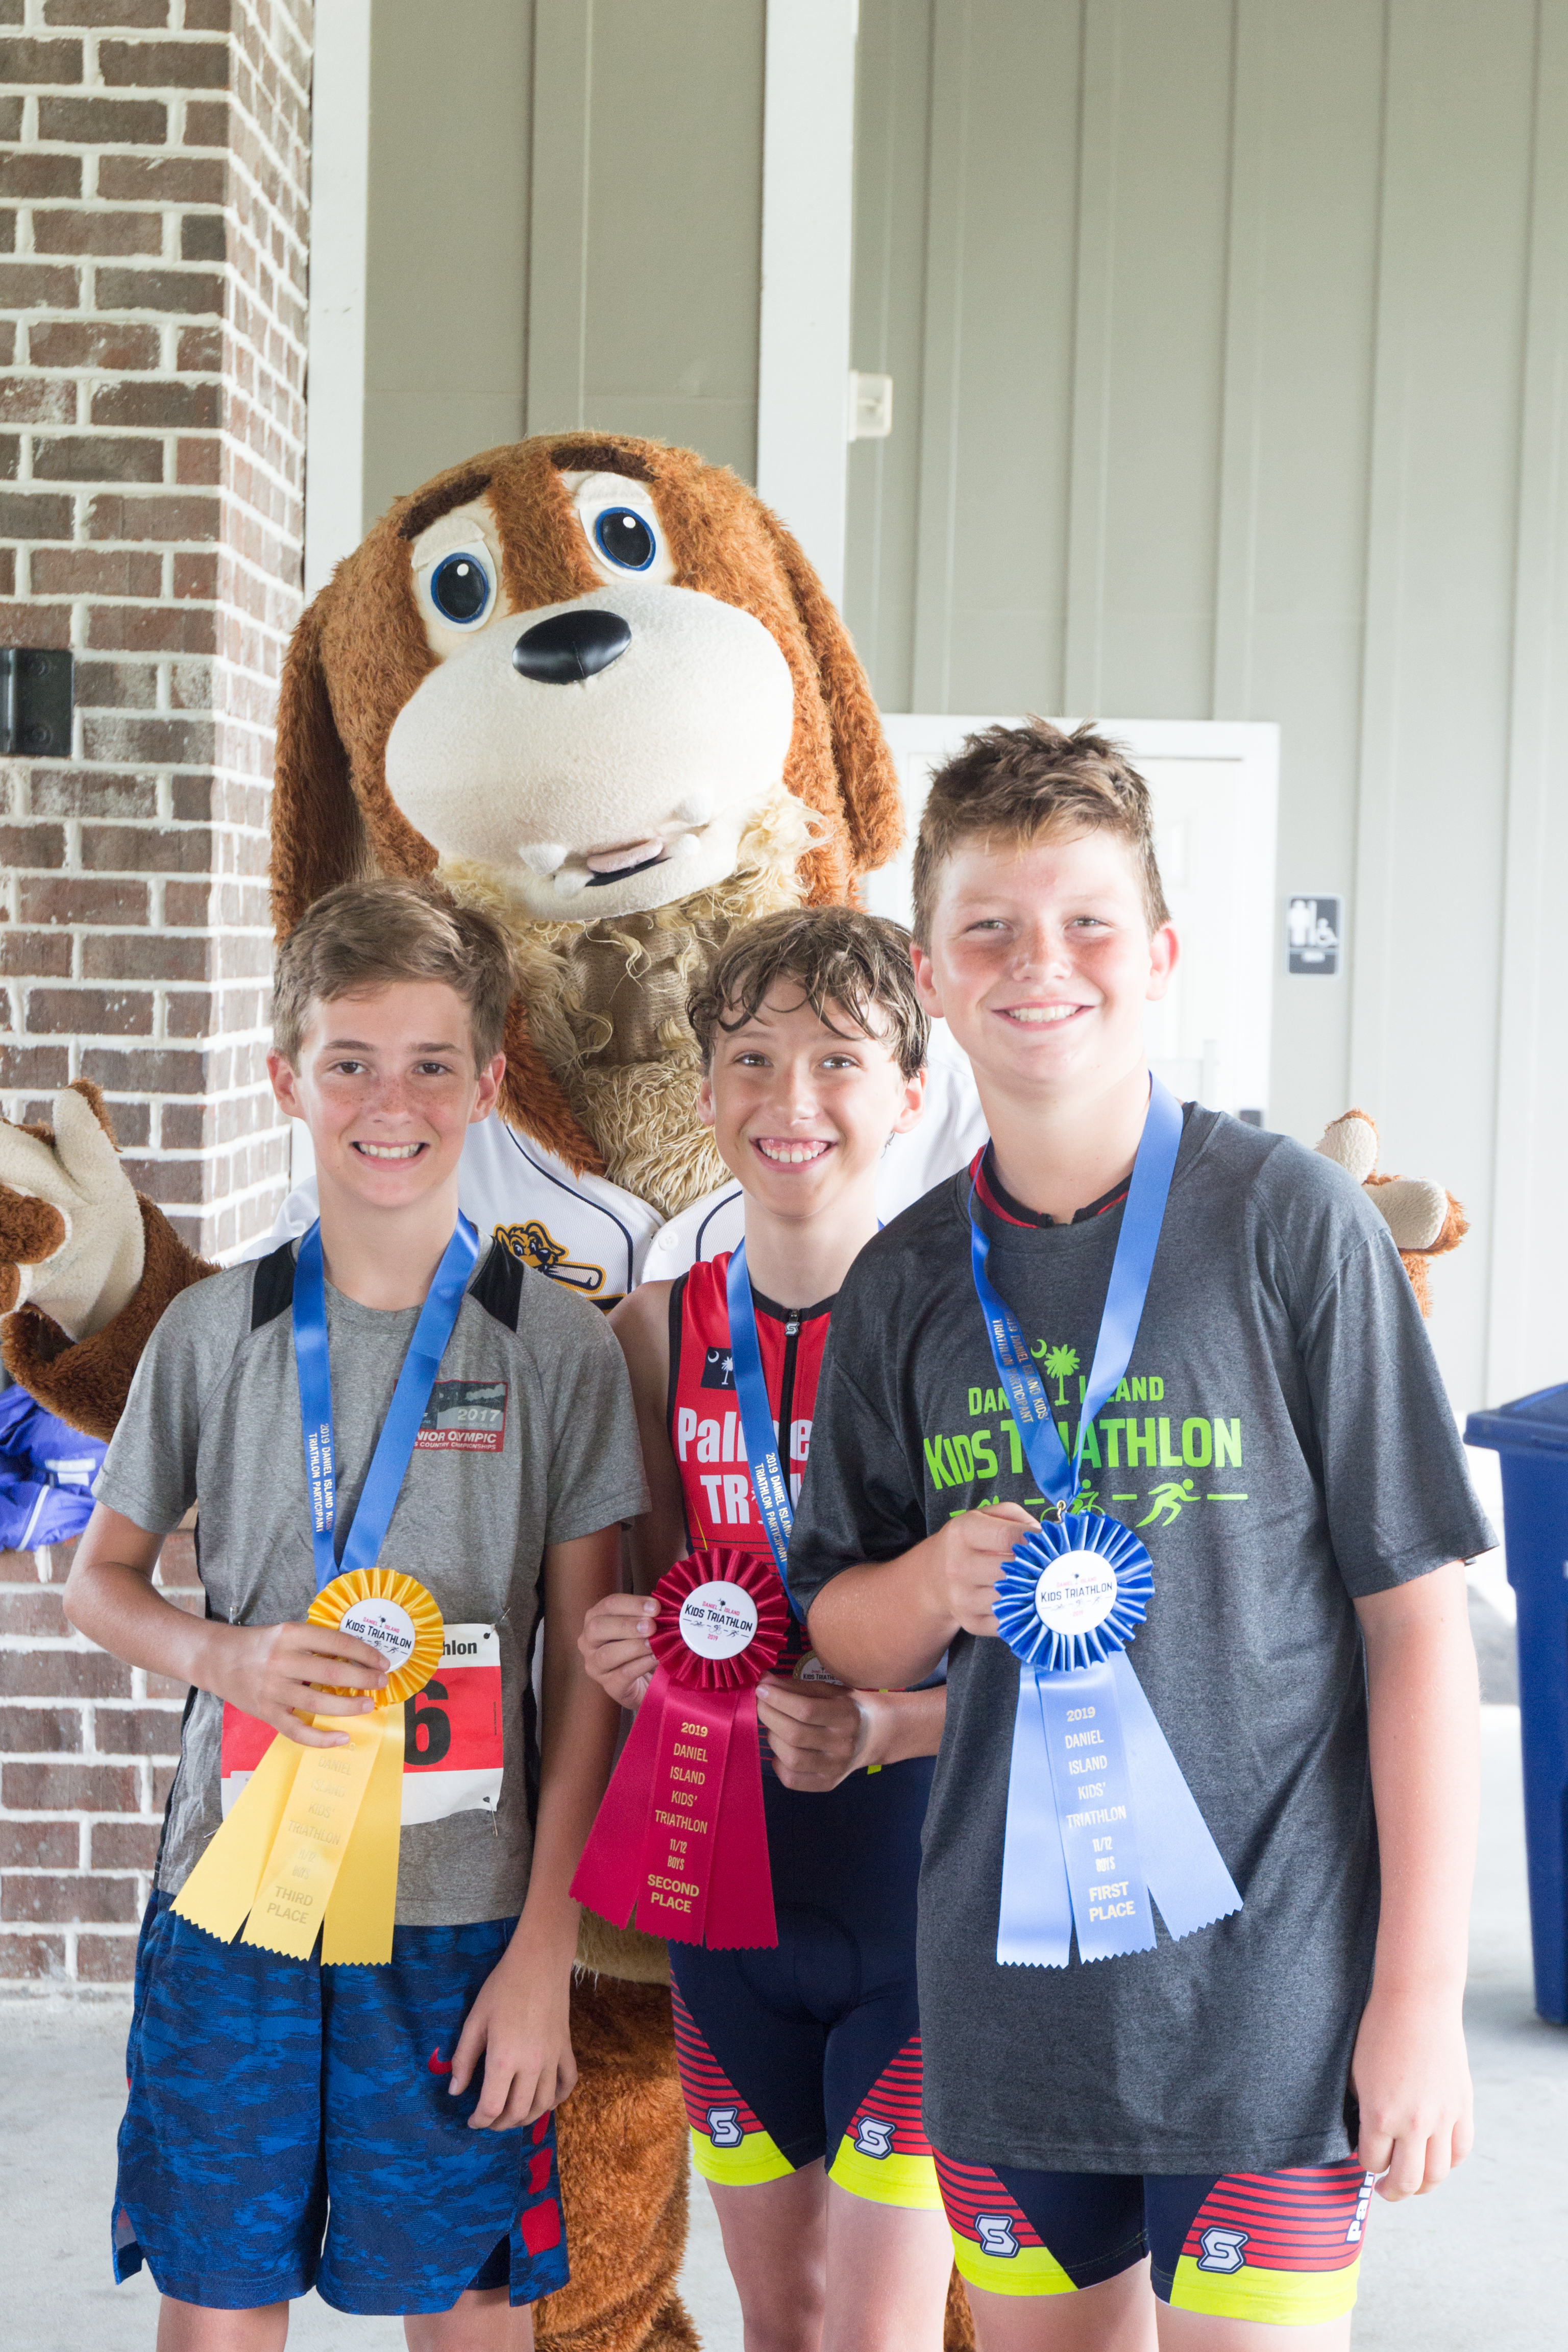 Winners in the 11-12 year old boys' category (200 meter swim, 5.5 mile bike, 1 mile run): Bryce May (1st), Luke Chapman (2nd) and Wesley Patterson (3rd).